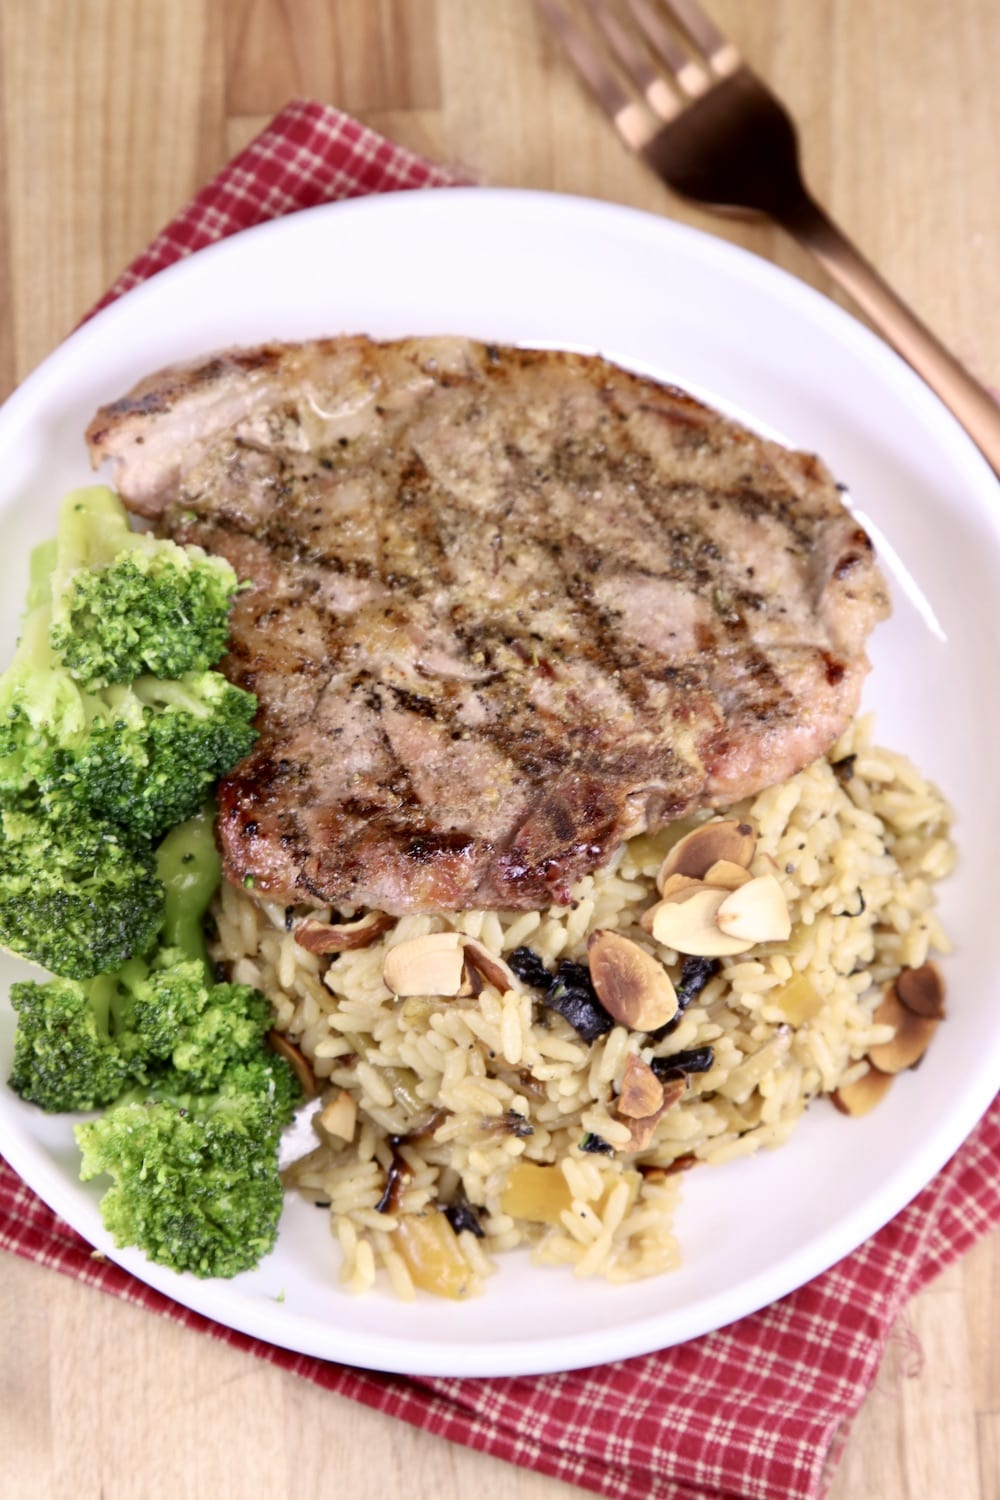 Plate with rice pilaf, broccoli and grilled pork chop